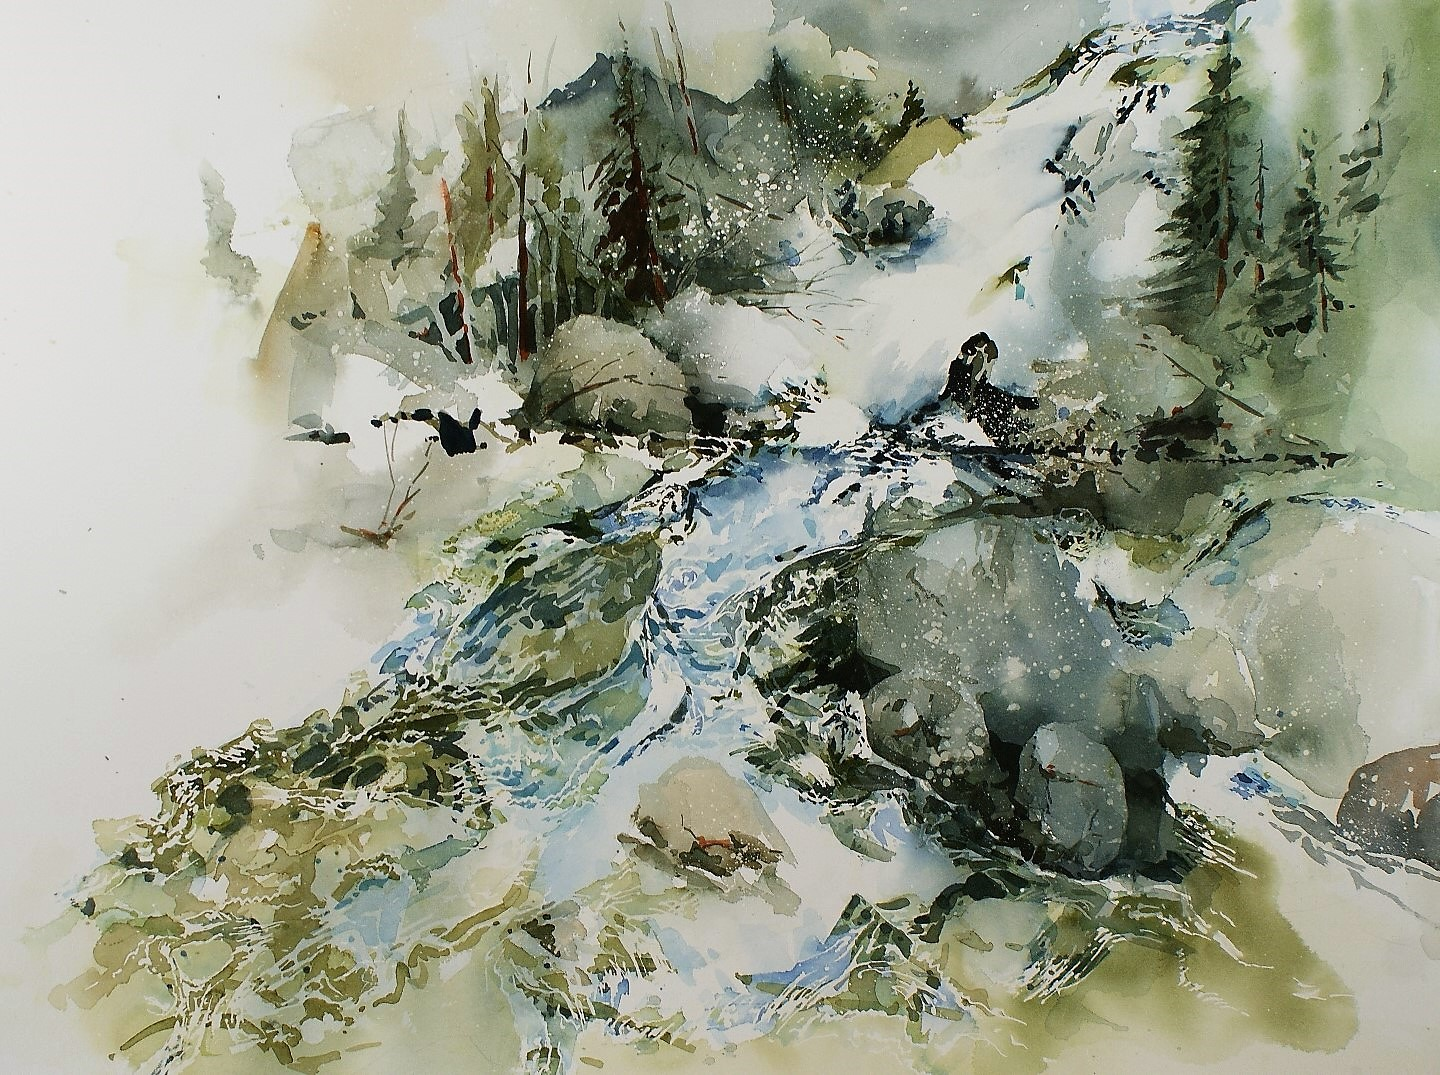 Watercolor Painting: Watercolor Landscapes, Flowers, Cityscapes, and ...